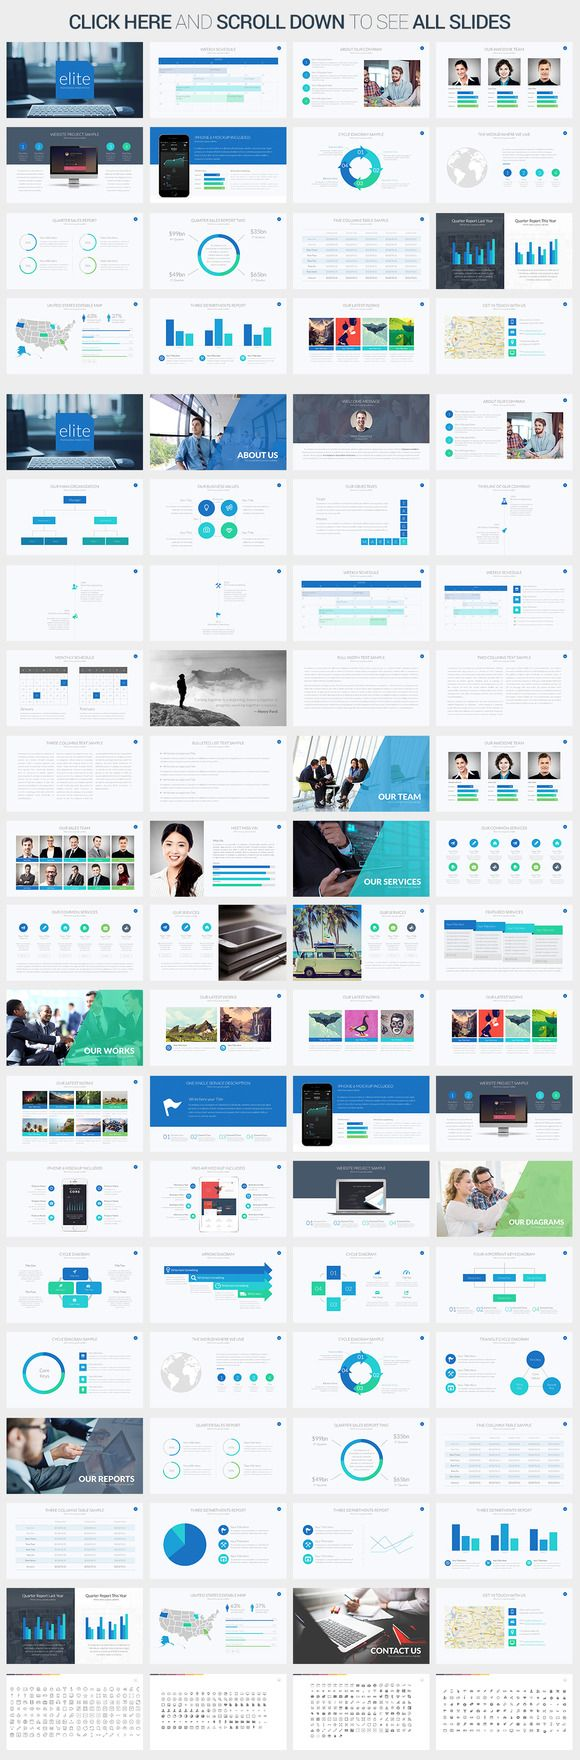 ppt templates designs - selo.l-ink.co, Ppt Templates Design, Powerpoint templates